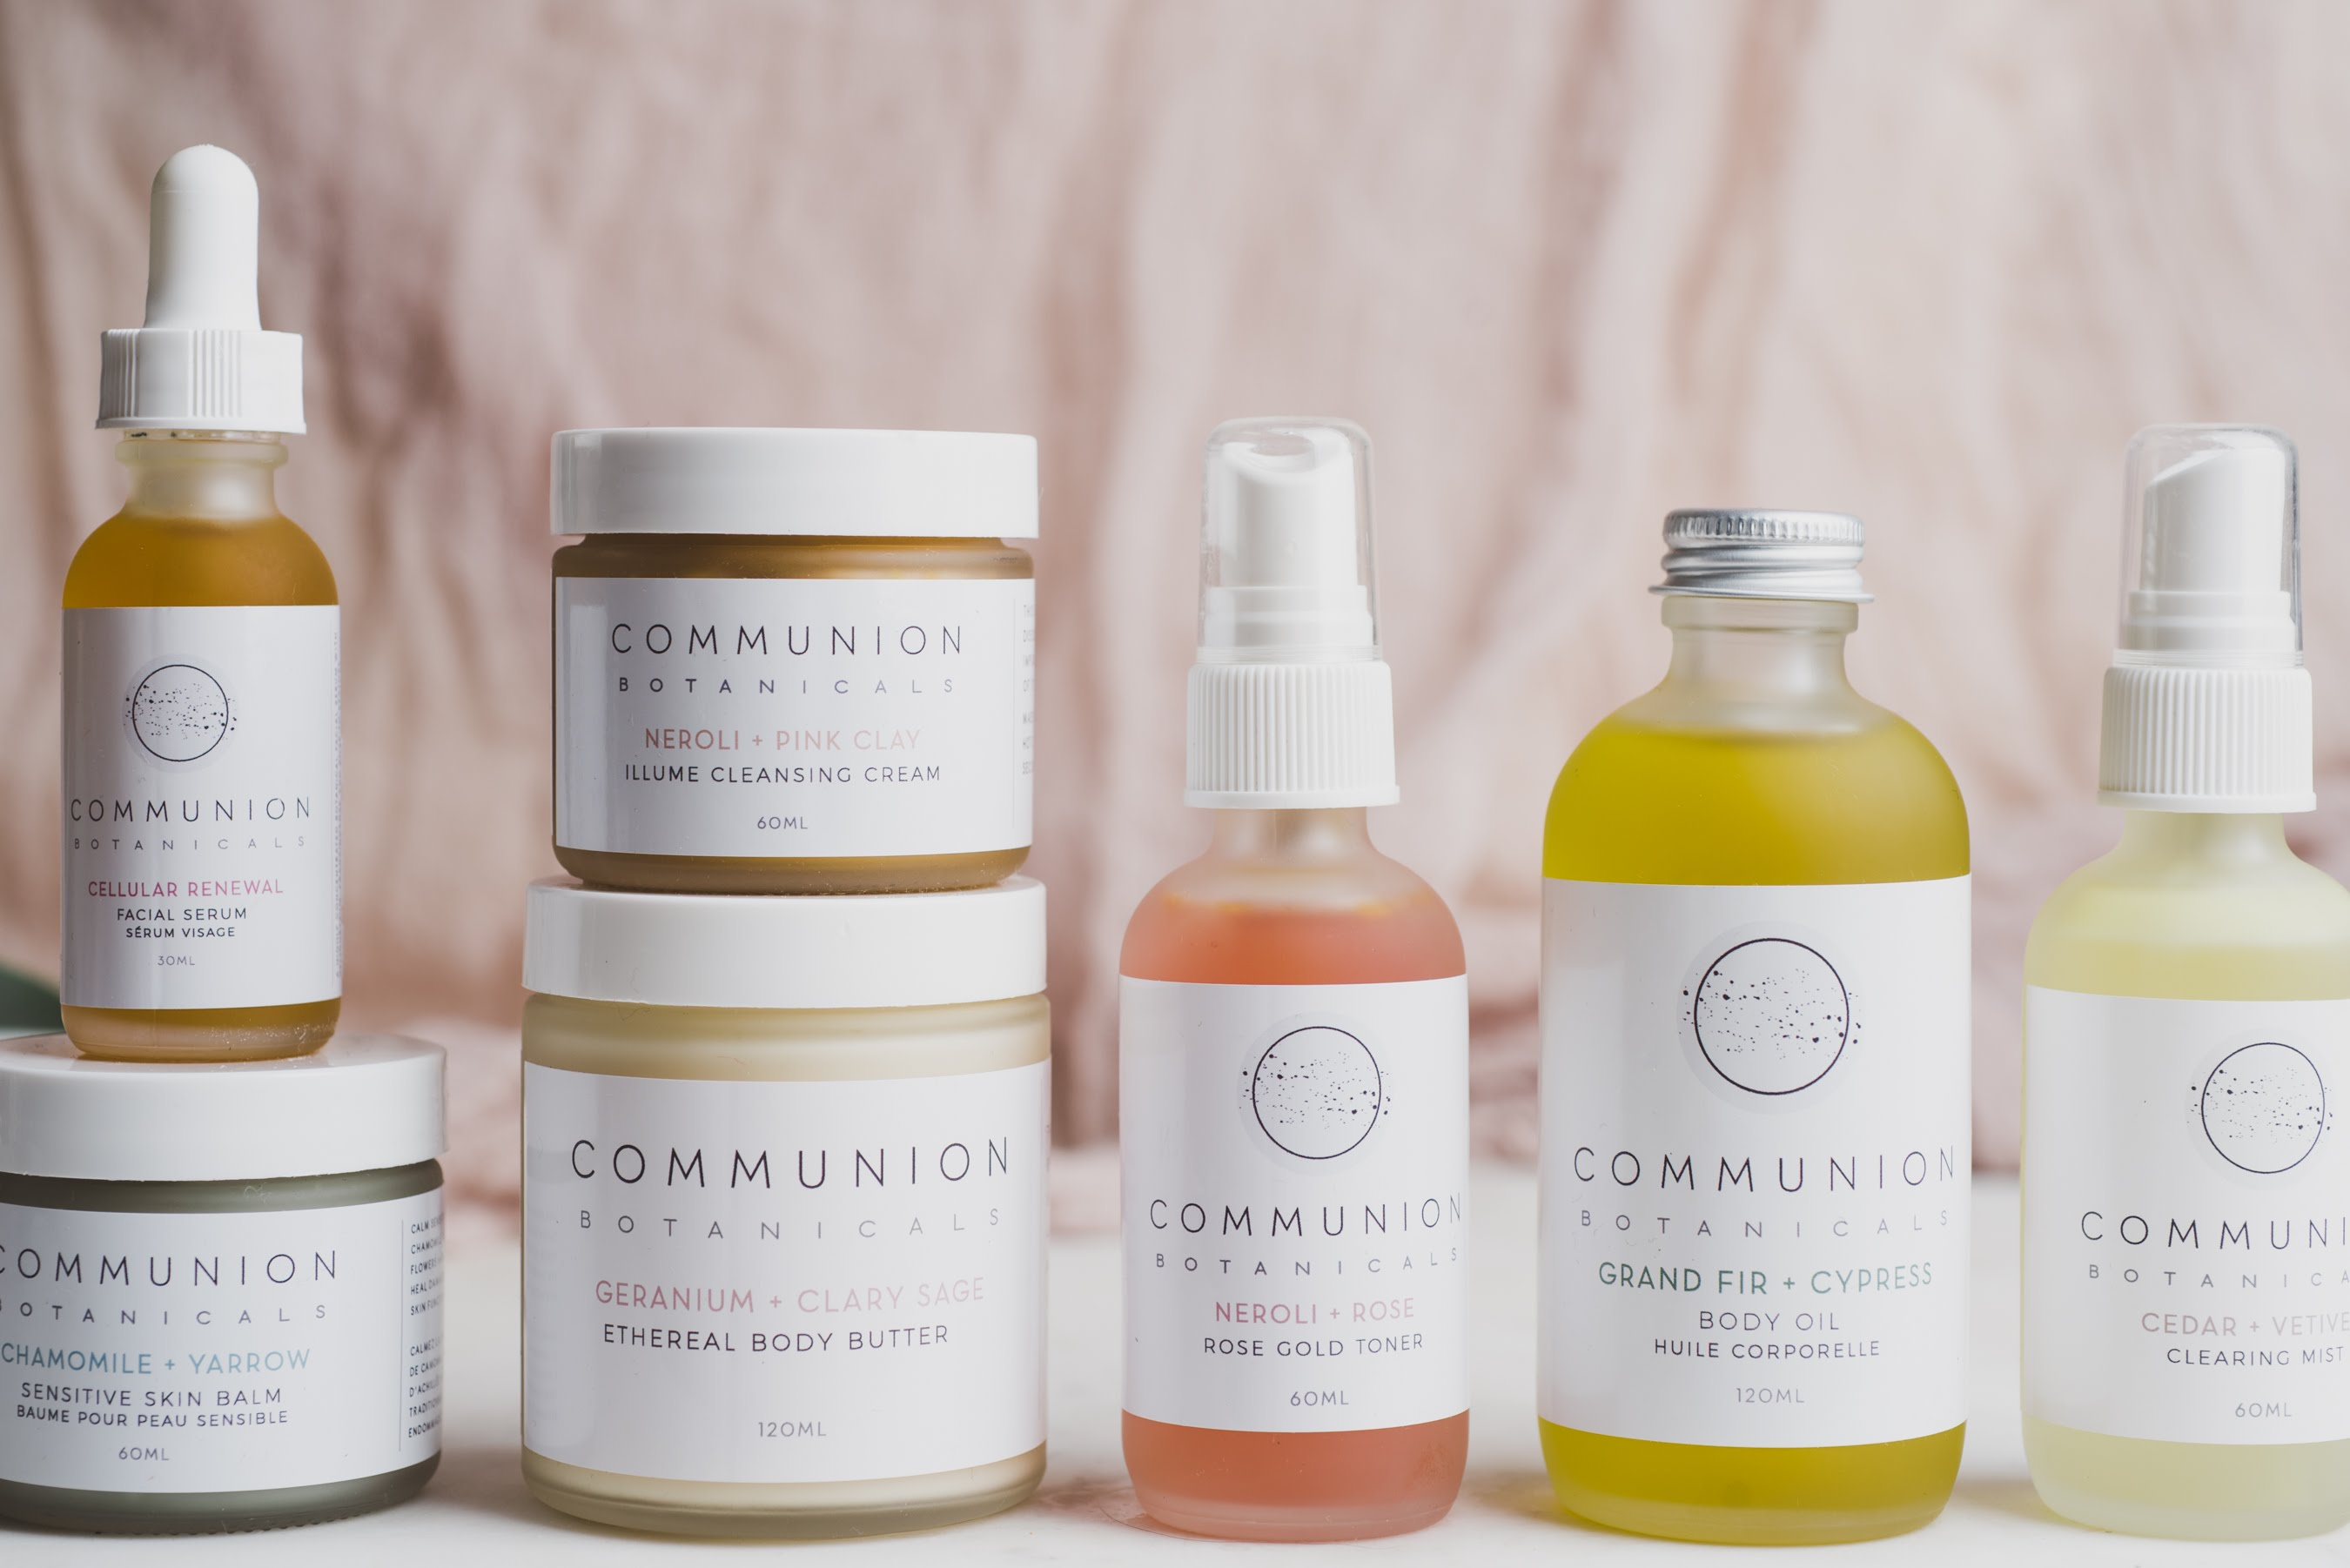 Communion Botanicals